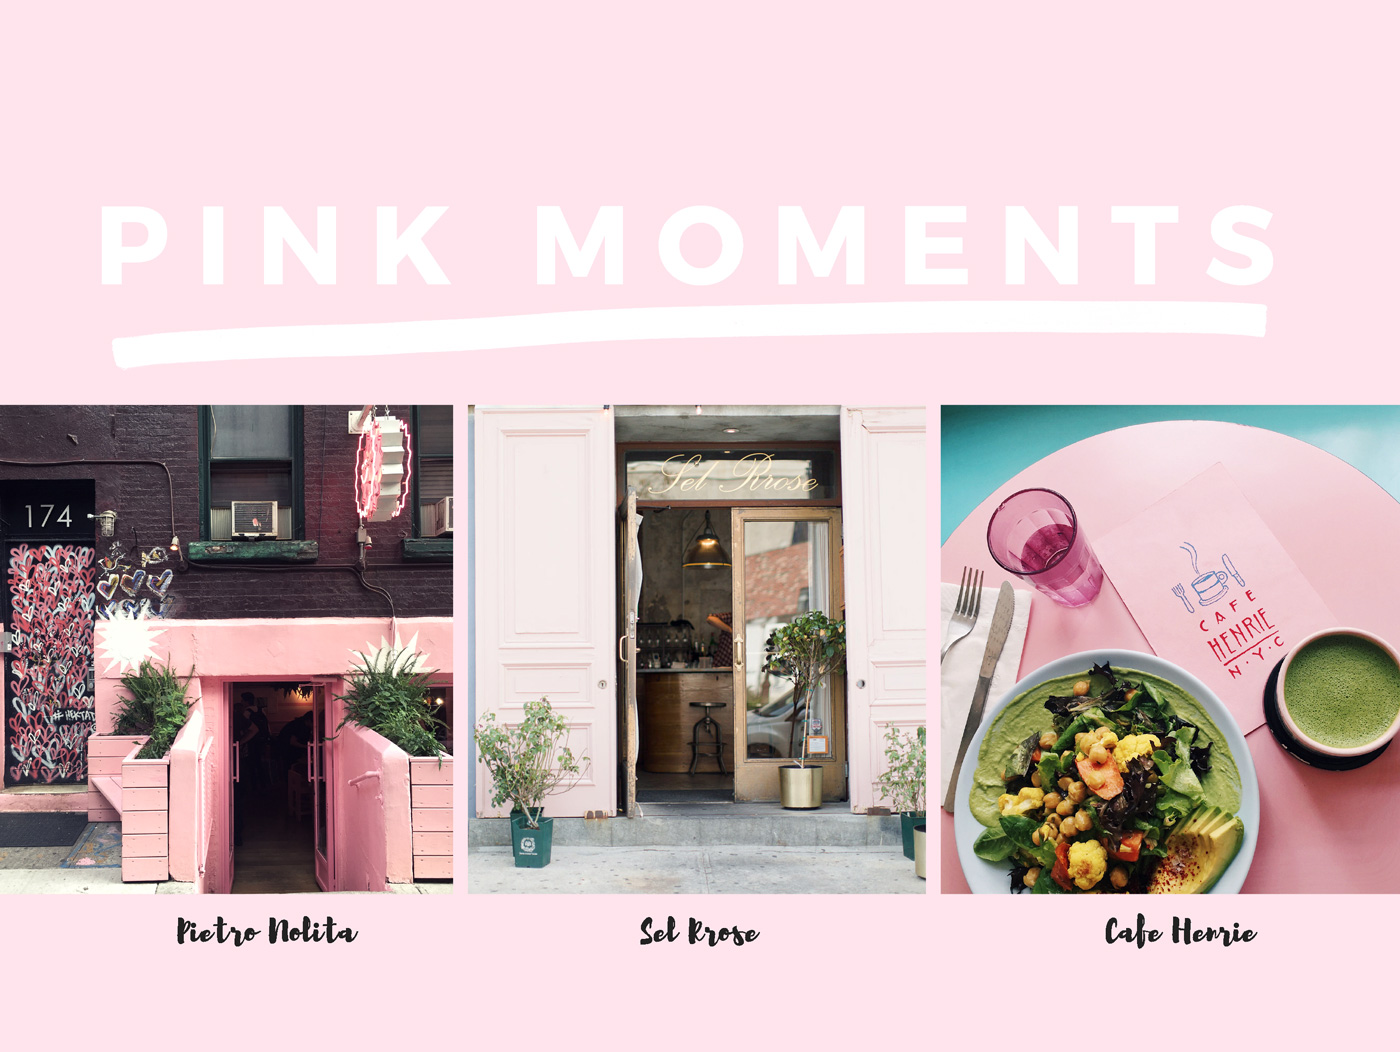 New York City Guide: the most Instagram worthy spots in NYC Featuring Pietro Nolita, Cafe Henri, Sel Rrose NYC photo by Armenyl